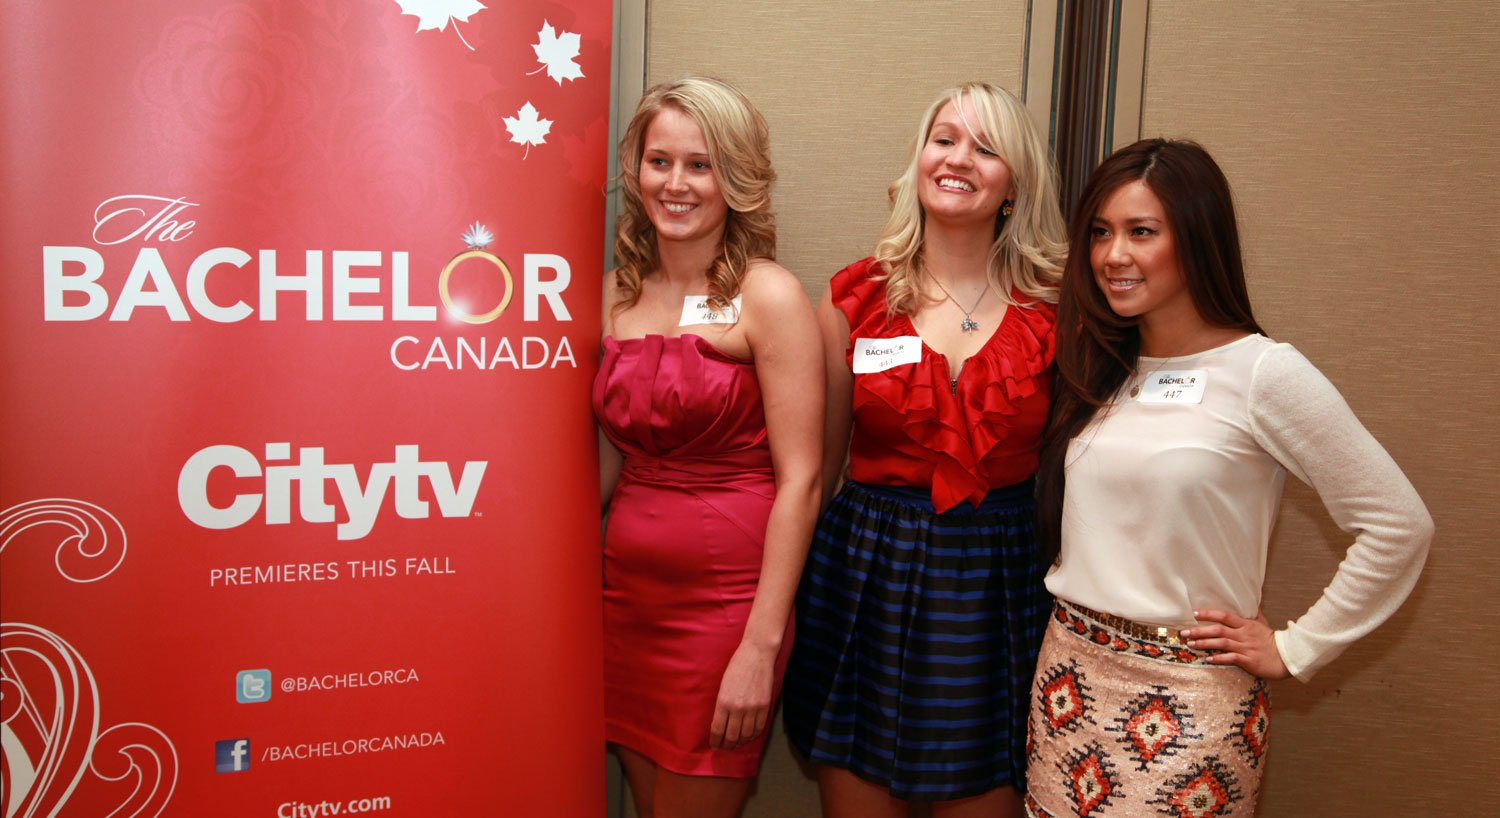 Hopeful Bachelorettes at The Bachelor Canada auditions